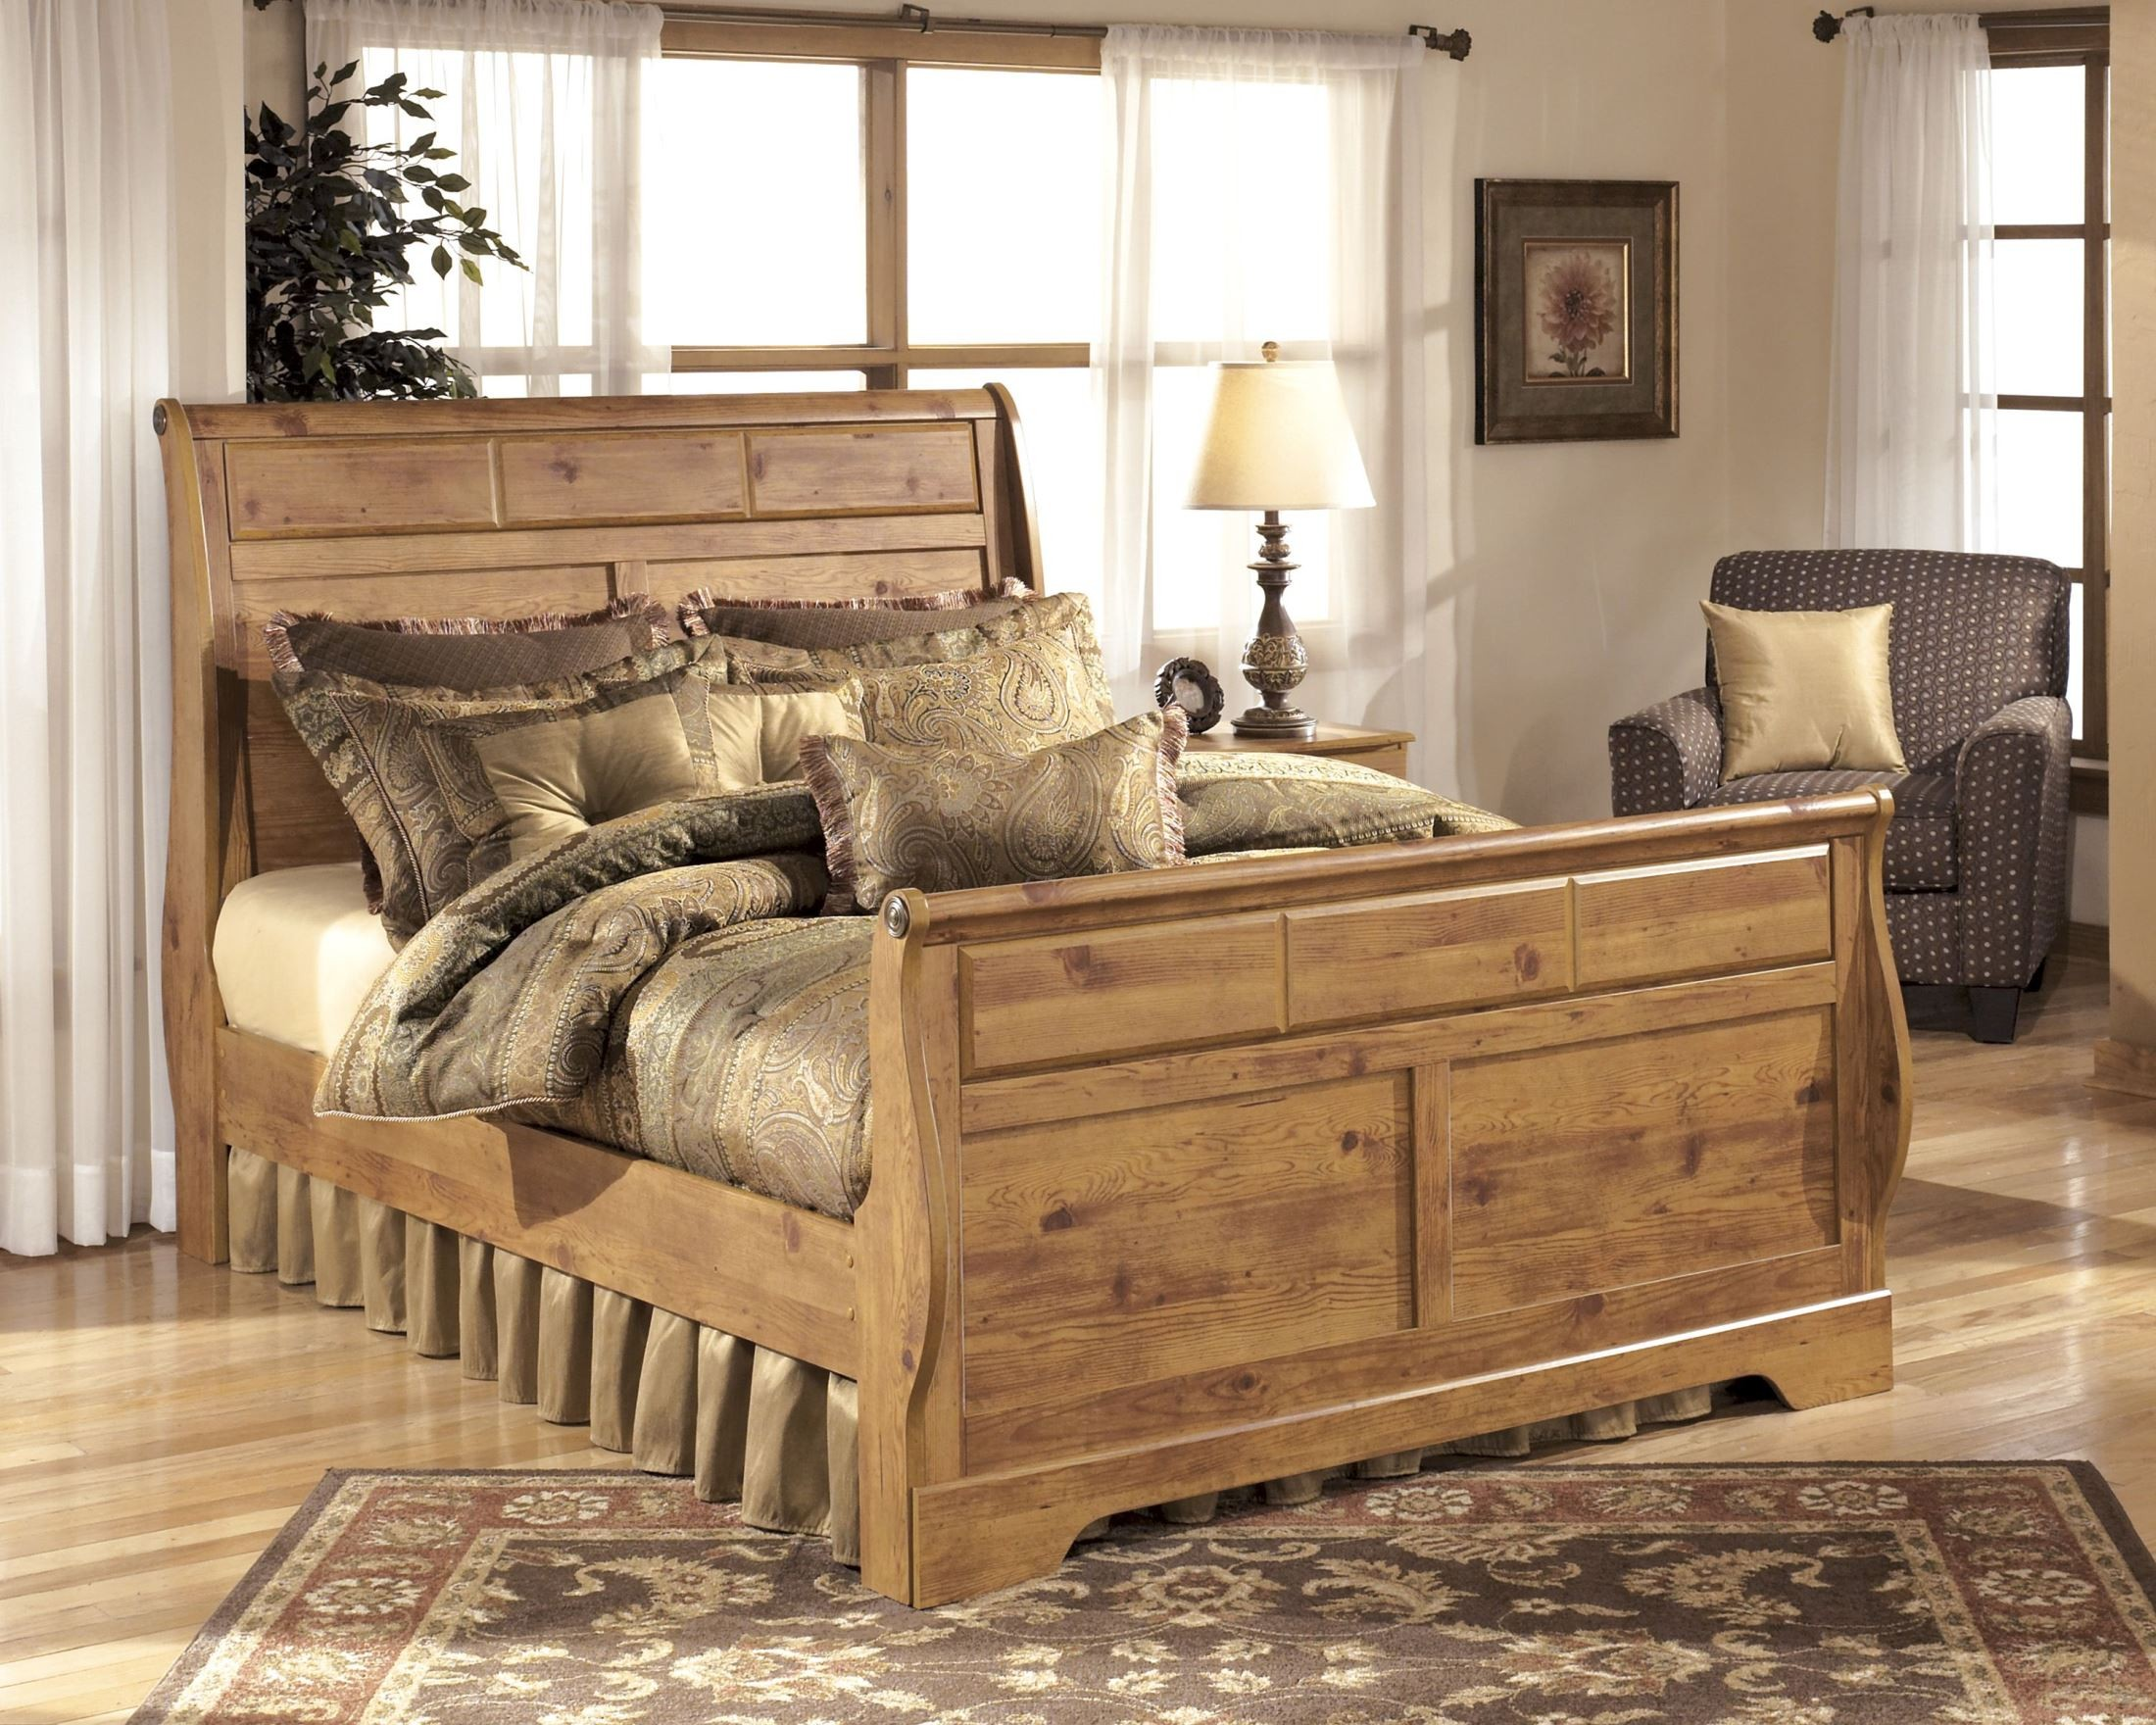 ashley furniture bittersweet sleigh bedroom set b219 65